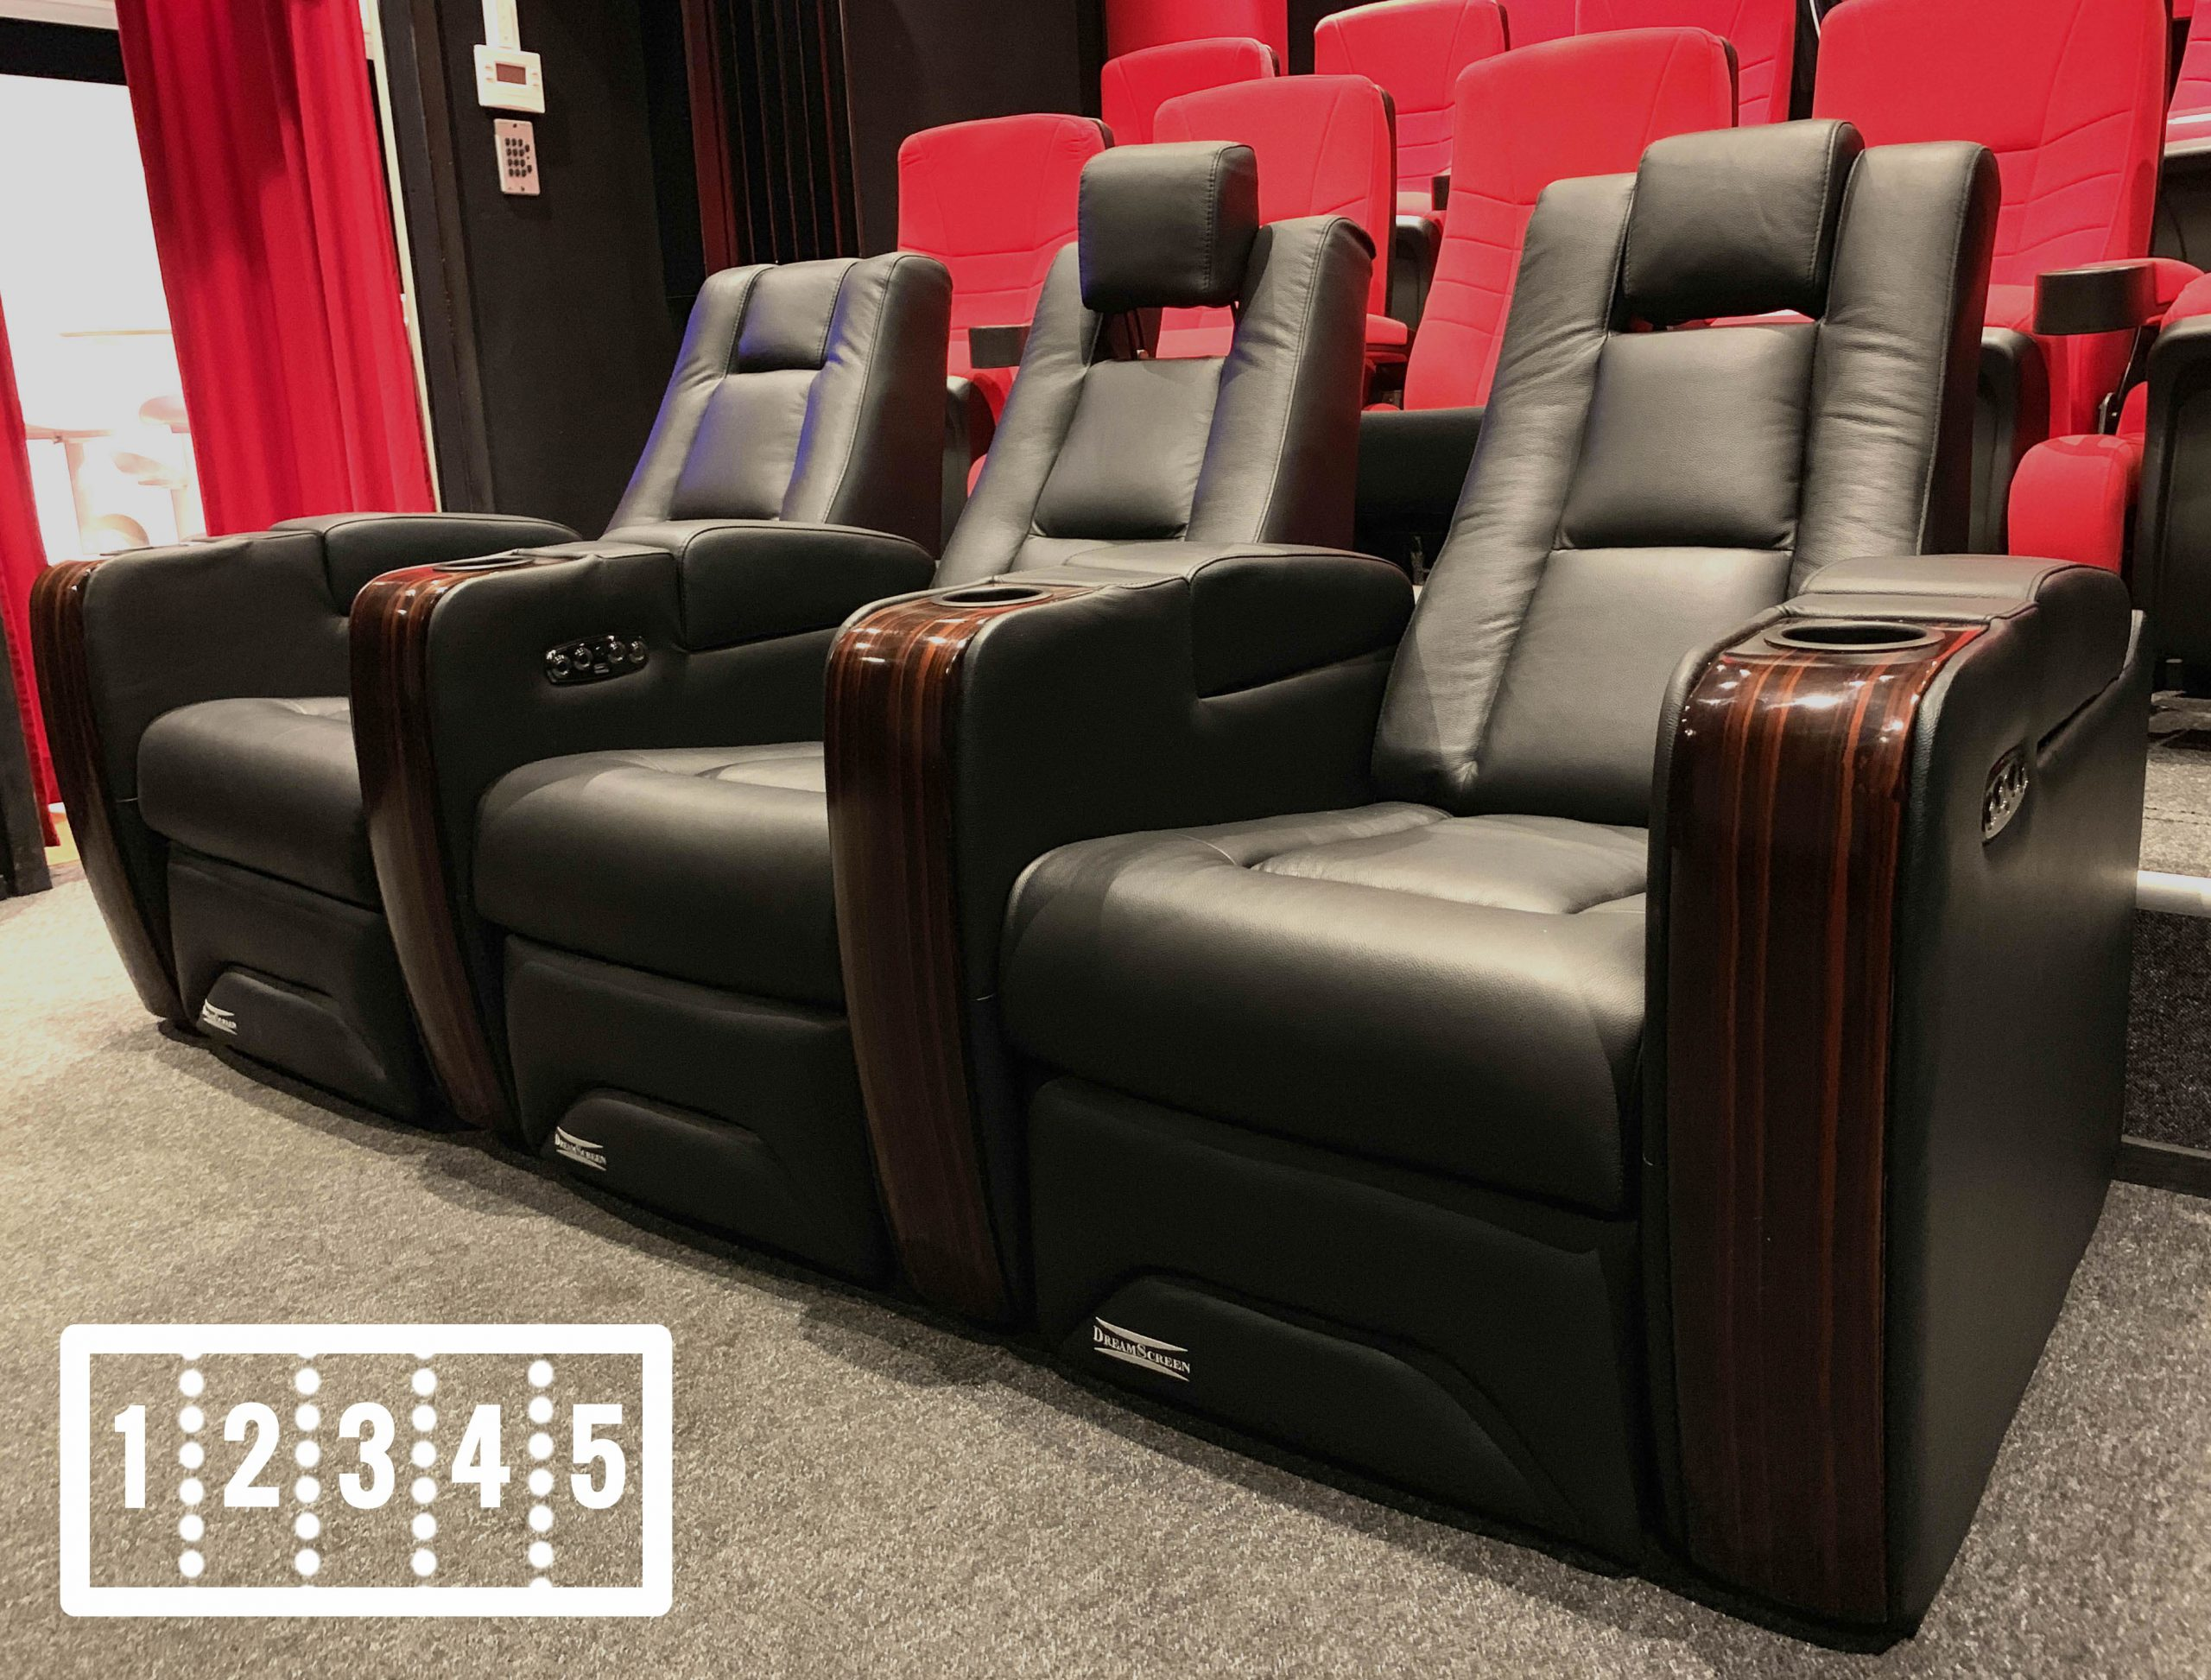 DREAMSCREEN CINESEAT PROMOTOR V4 MOTORISERT RECLINER 5-SETER SKINN SORT LOVESEAT POWERBUY